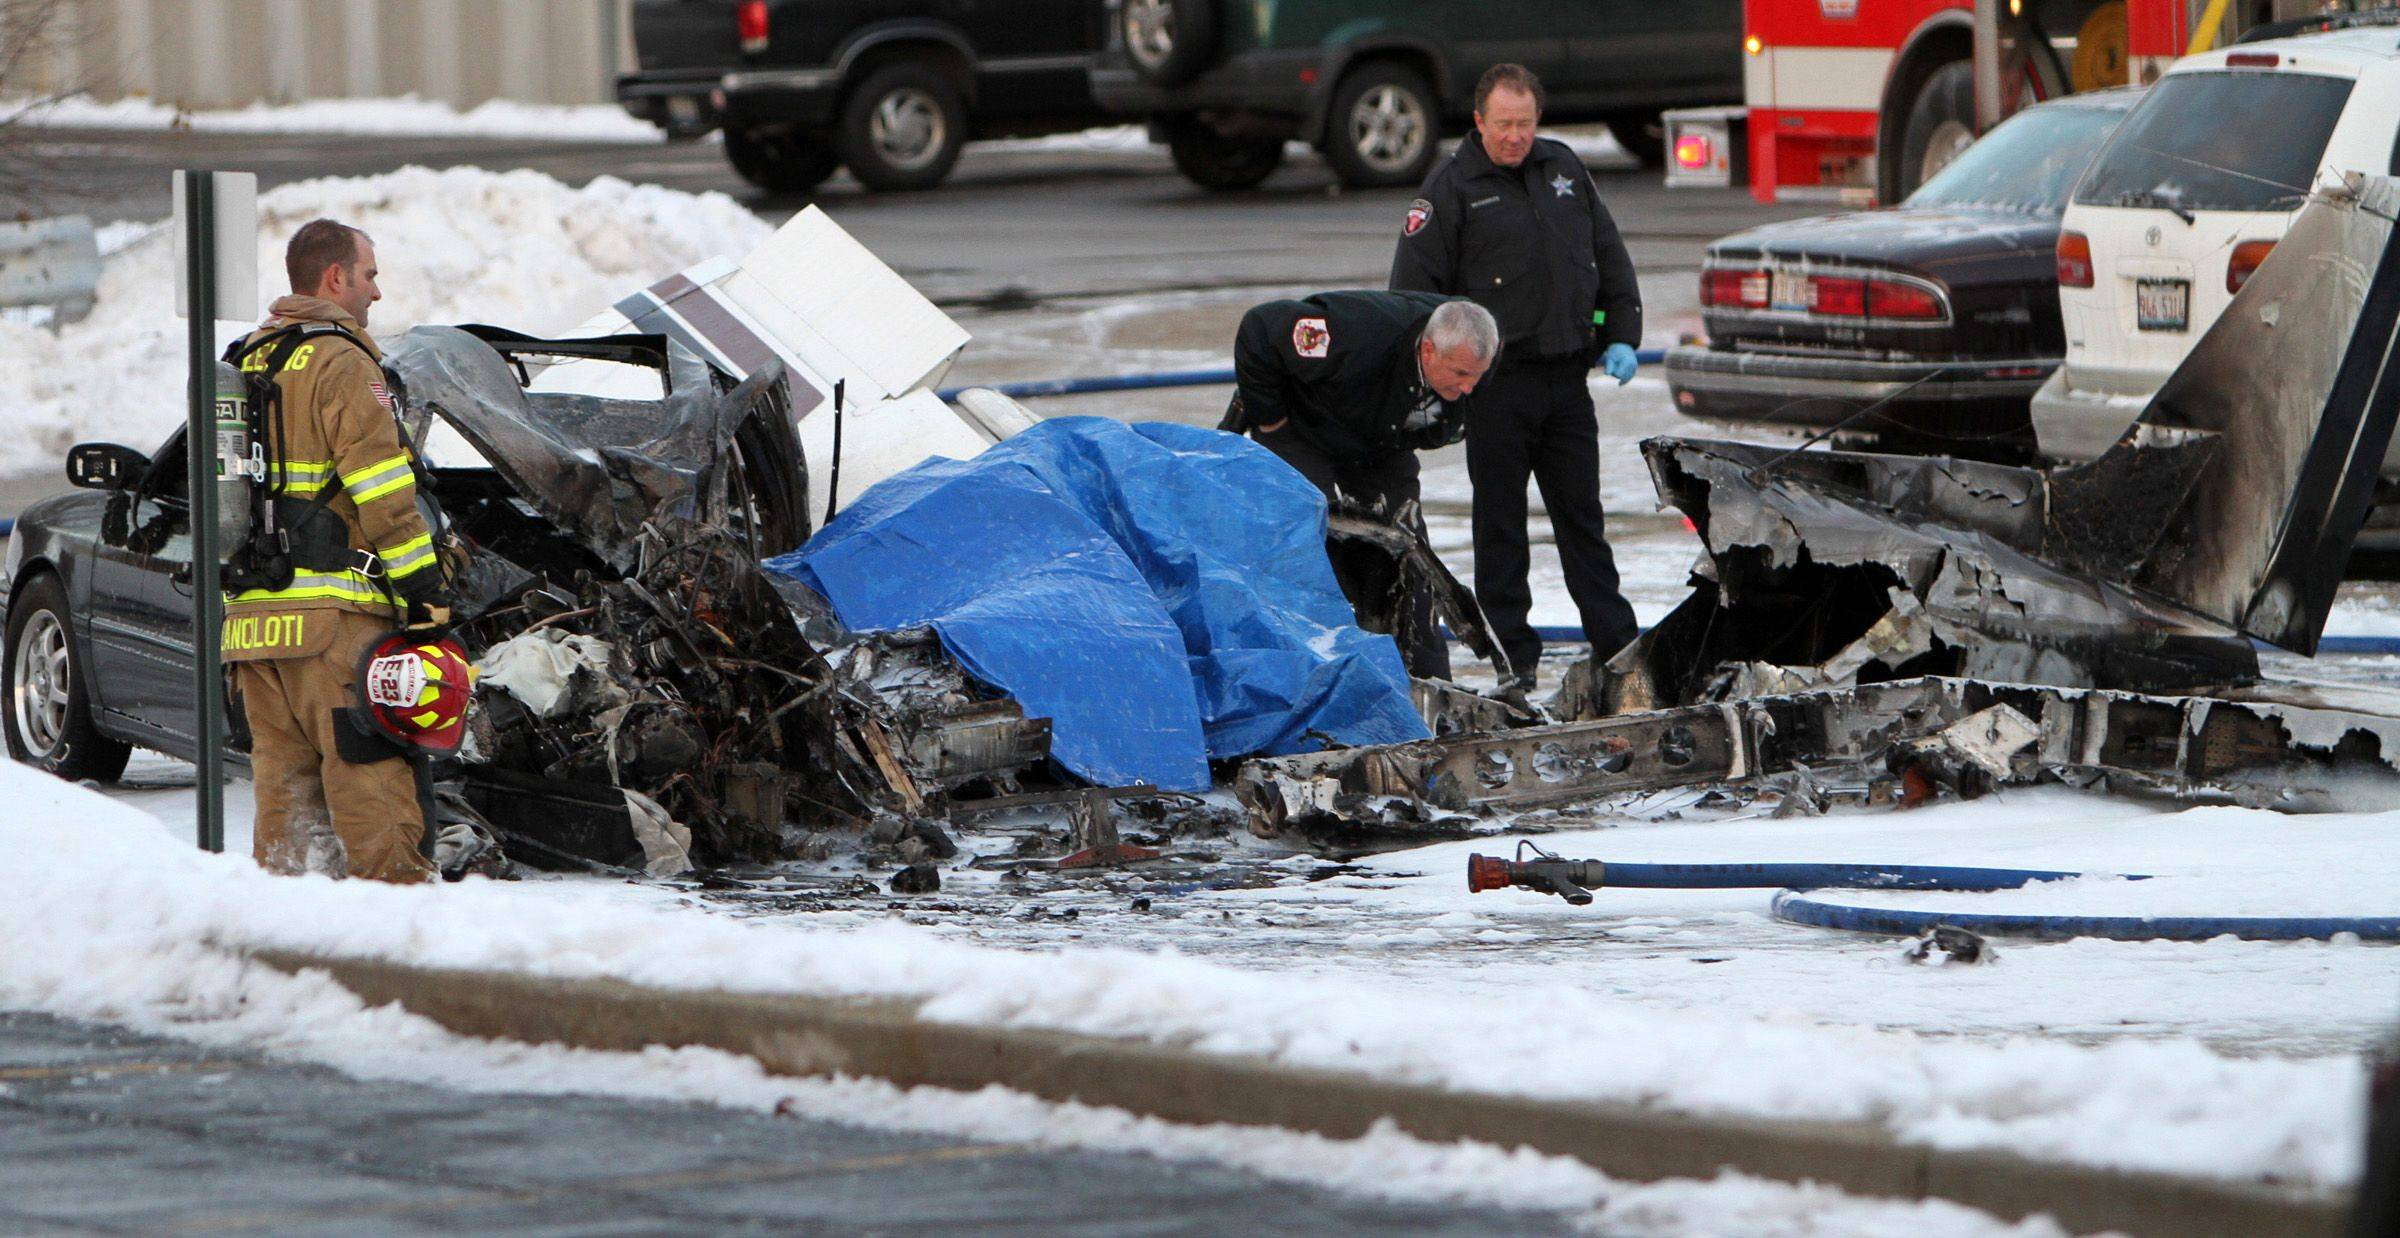 A small plane crashed on two cars in a parking lot at Chaddick Drive and Hintz Road in Wheeling on Wednesday.